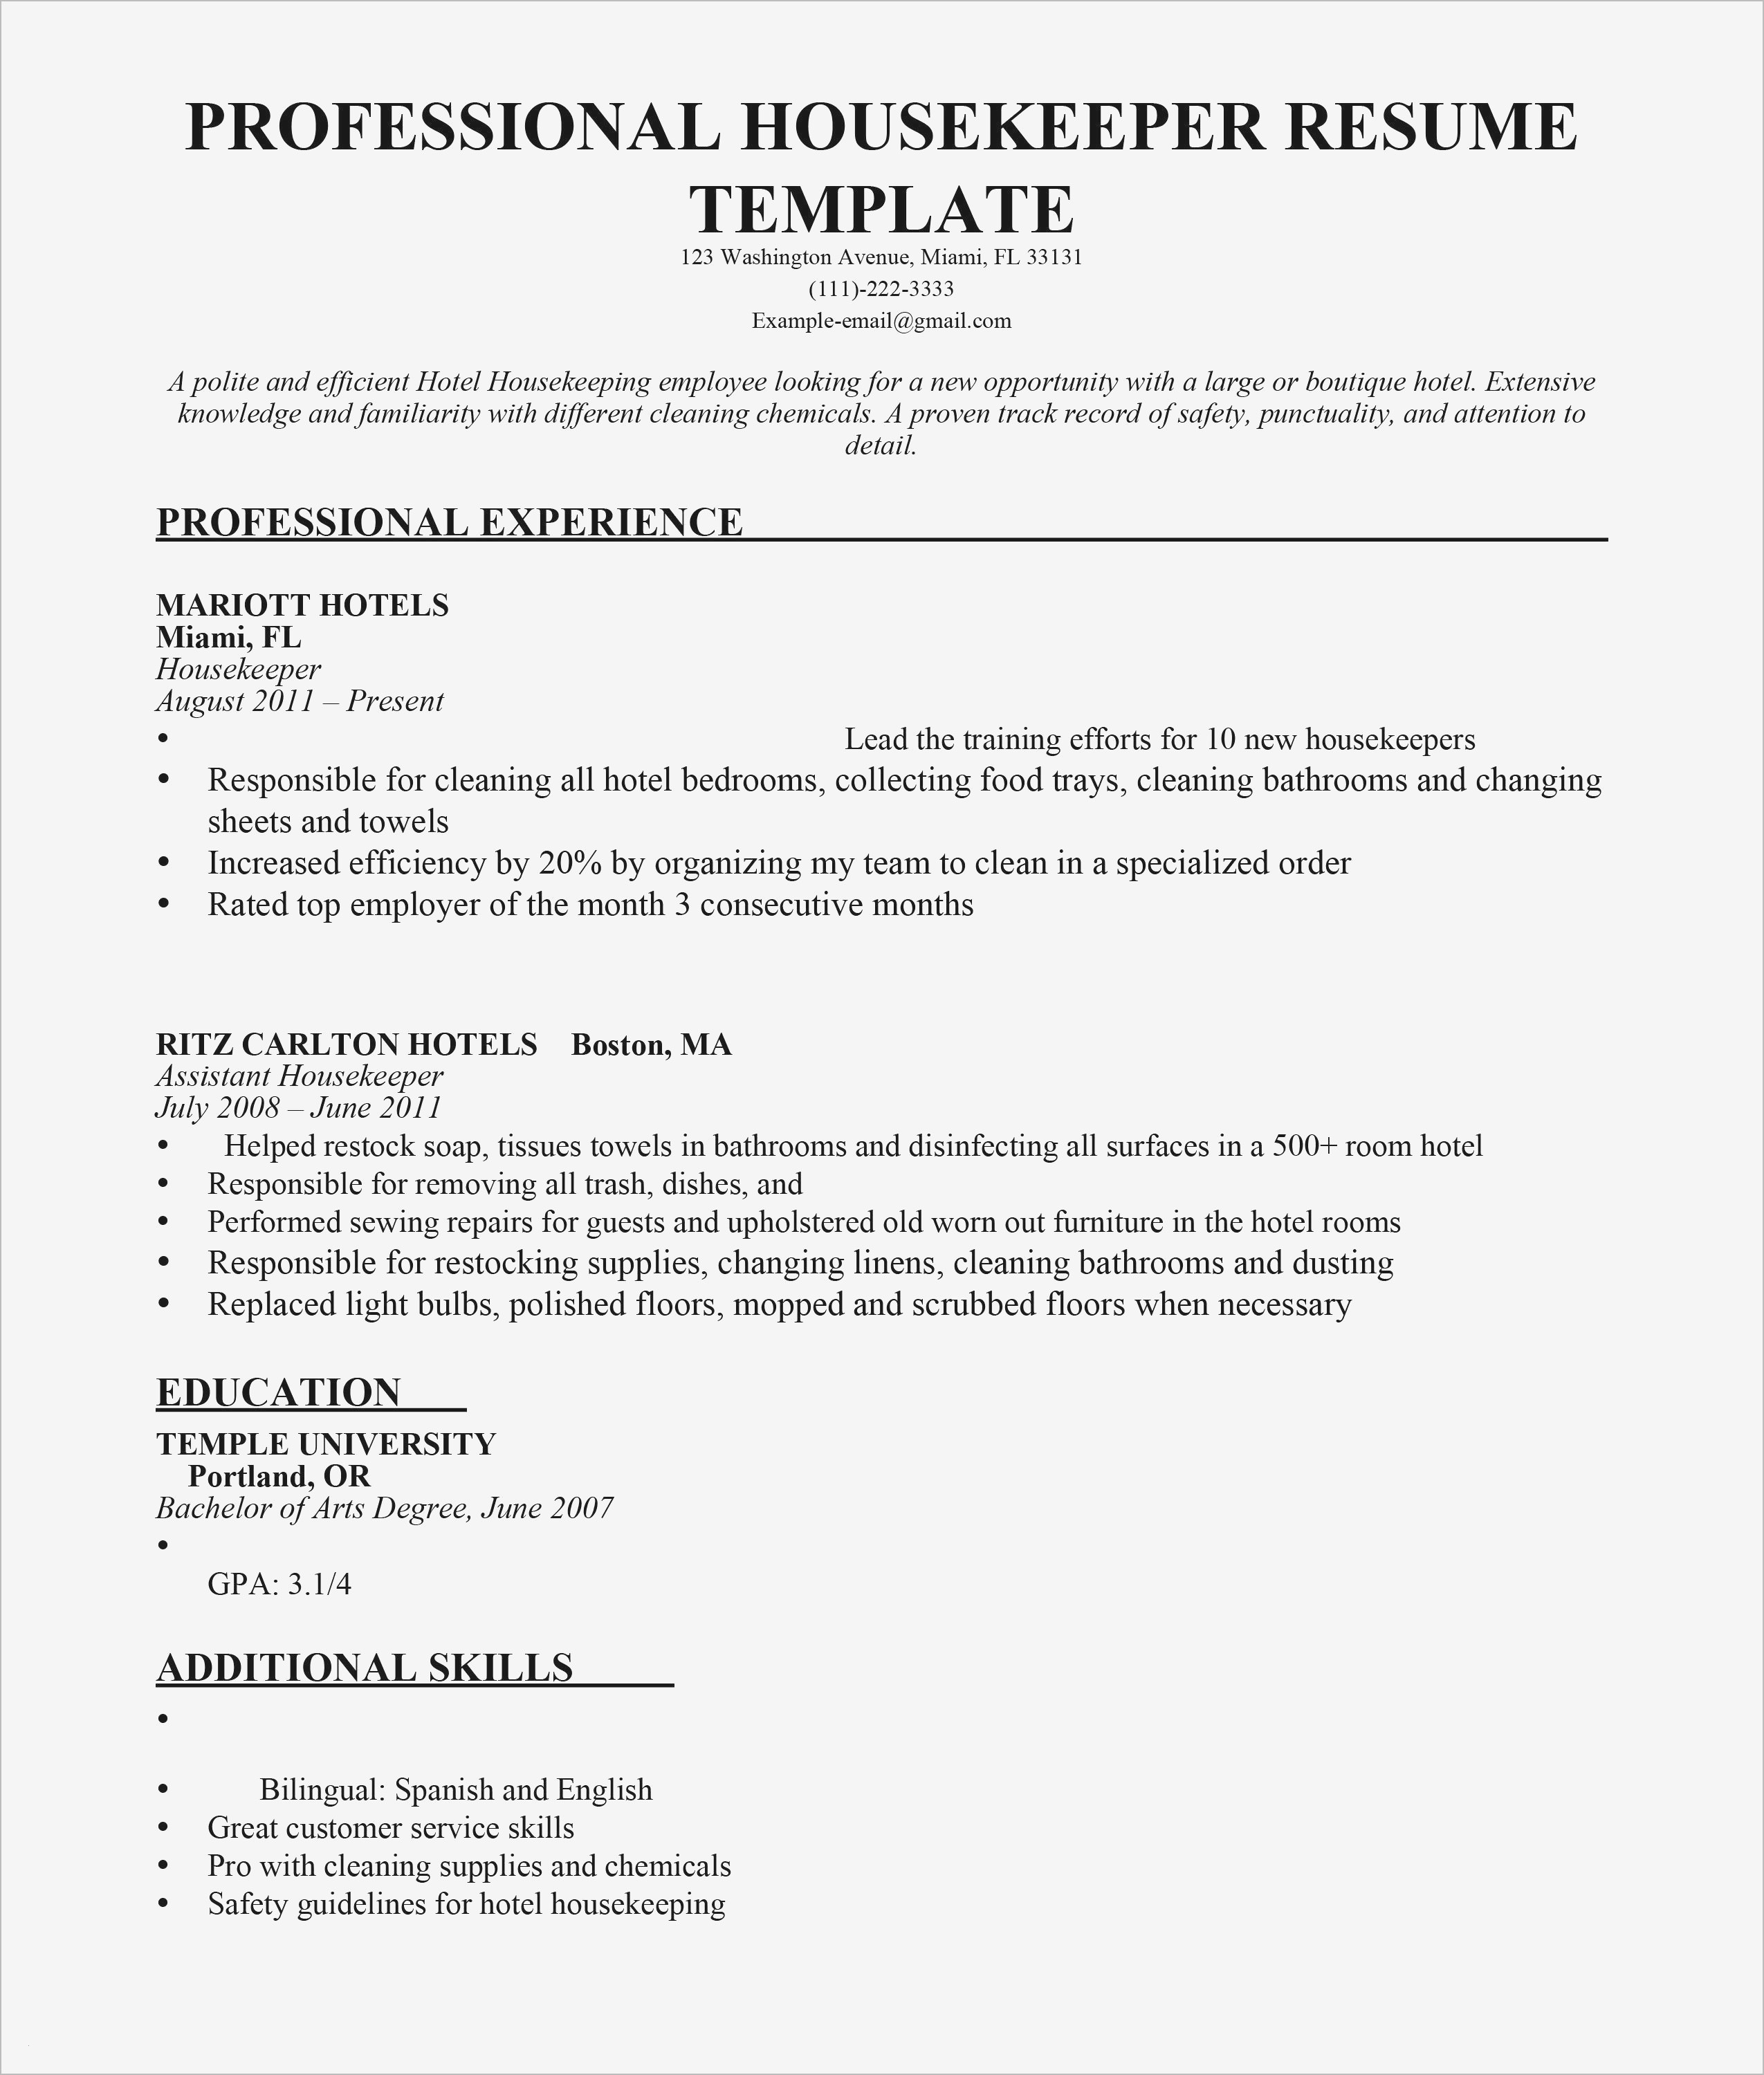 Hotel Housekeeping Resume - Resume for Hotel Housekeeping New Housekeeping Description for